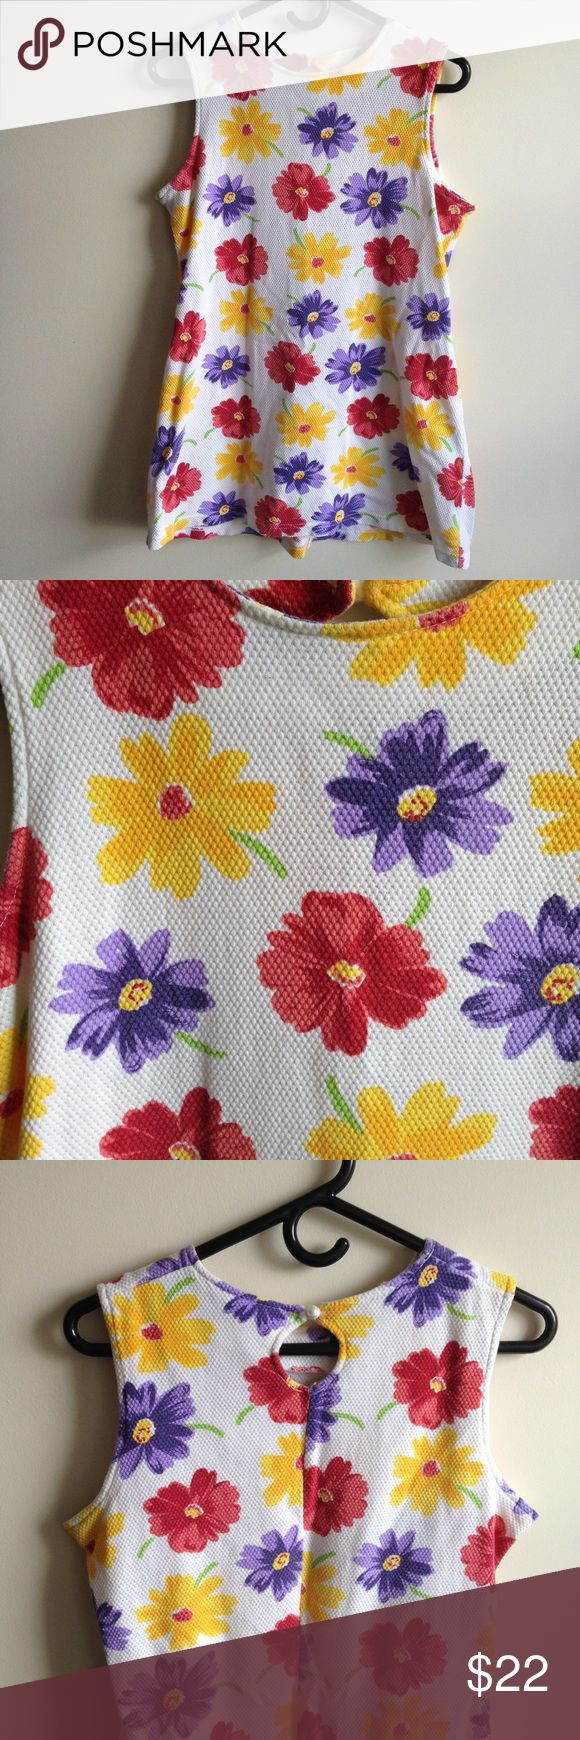 Love flower power daisy graffiti print cotton fabric 60s 70s retro - 90 S Vintage Flower Power Mini Dress Really Cool Fabric To This One This Dress Has